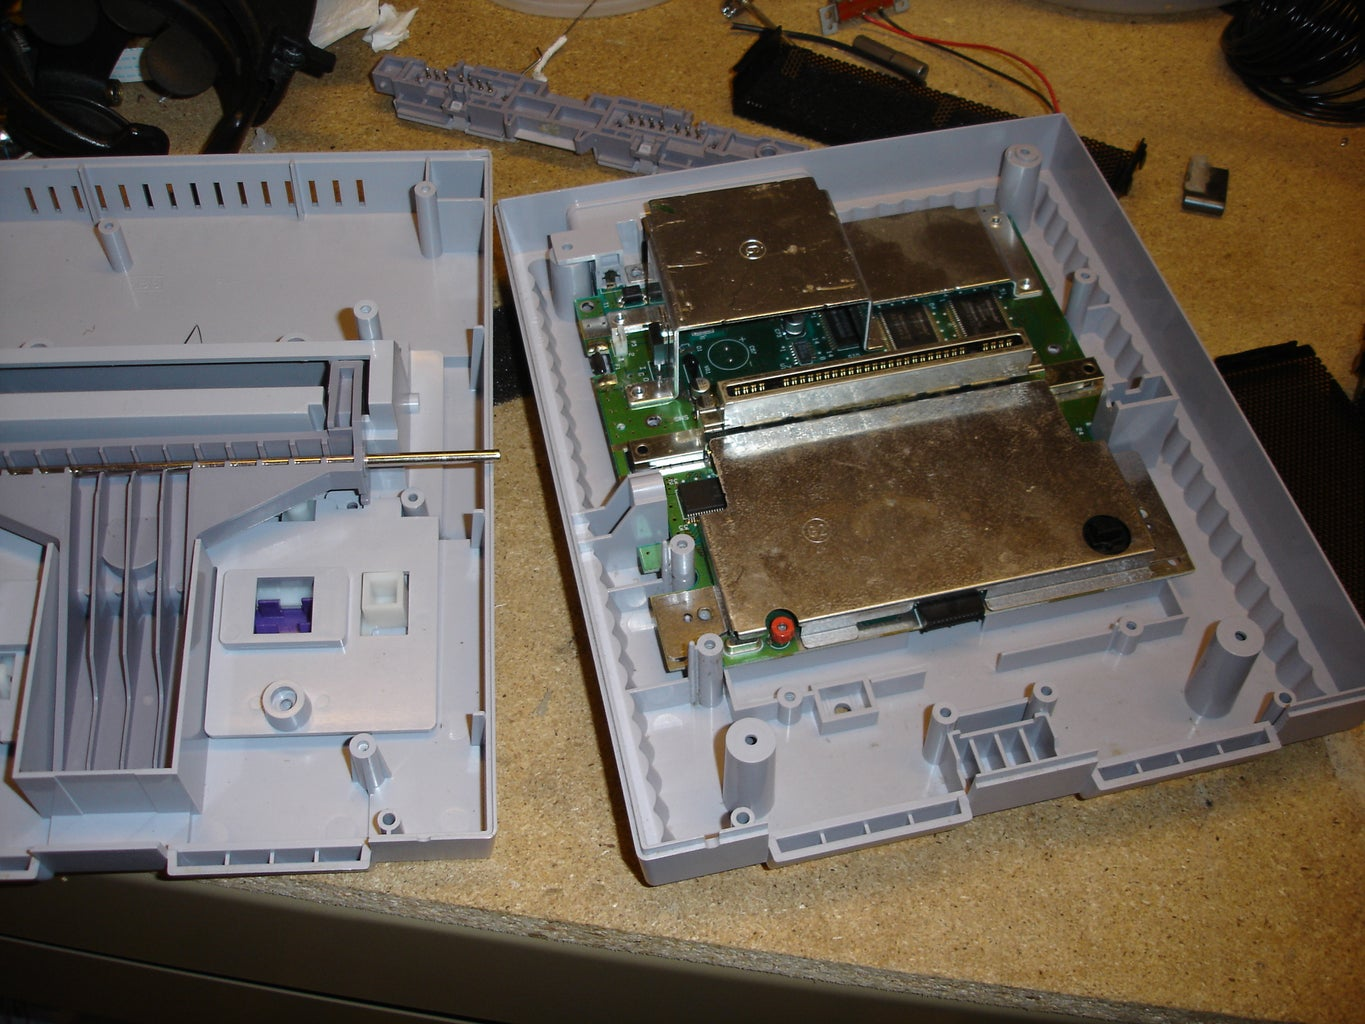 Take Apart the Old Super NES